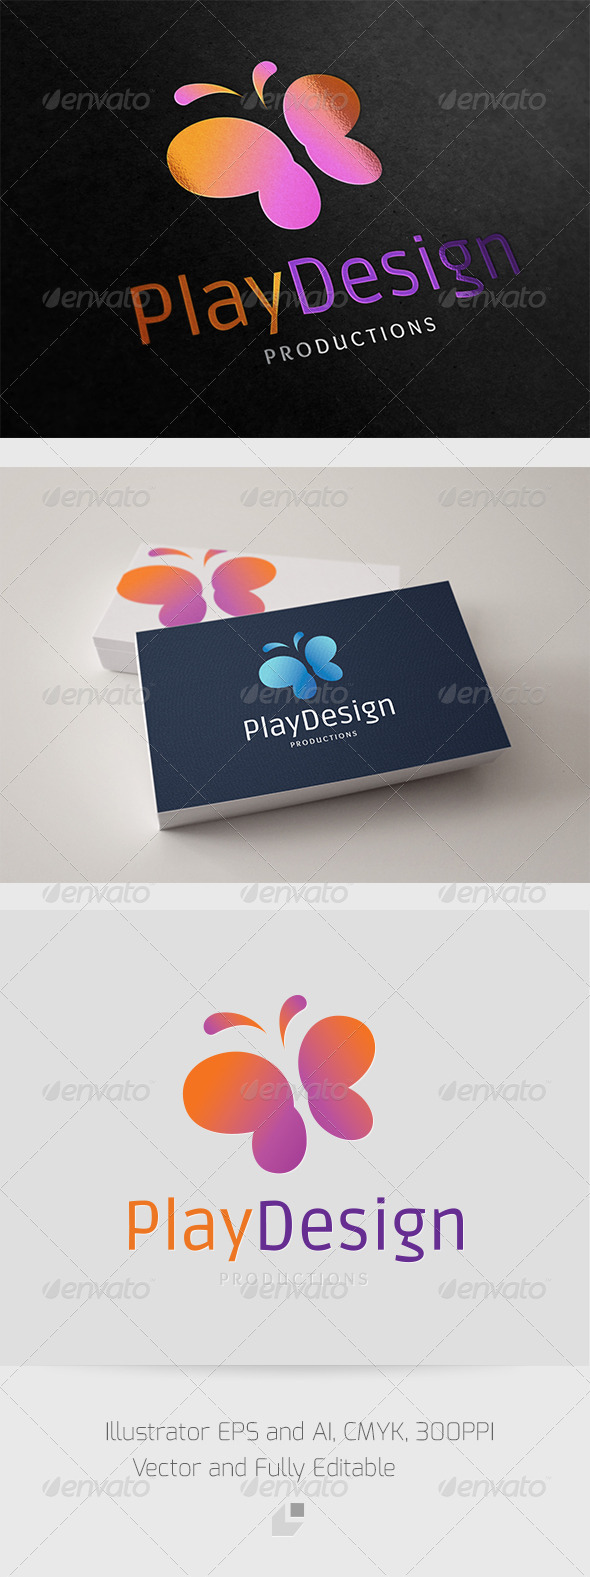 Play Design Logo - Animals Logo Templates